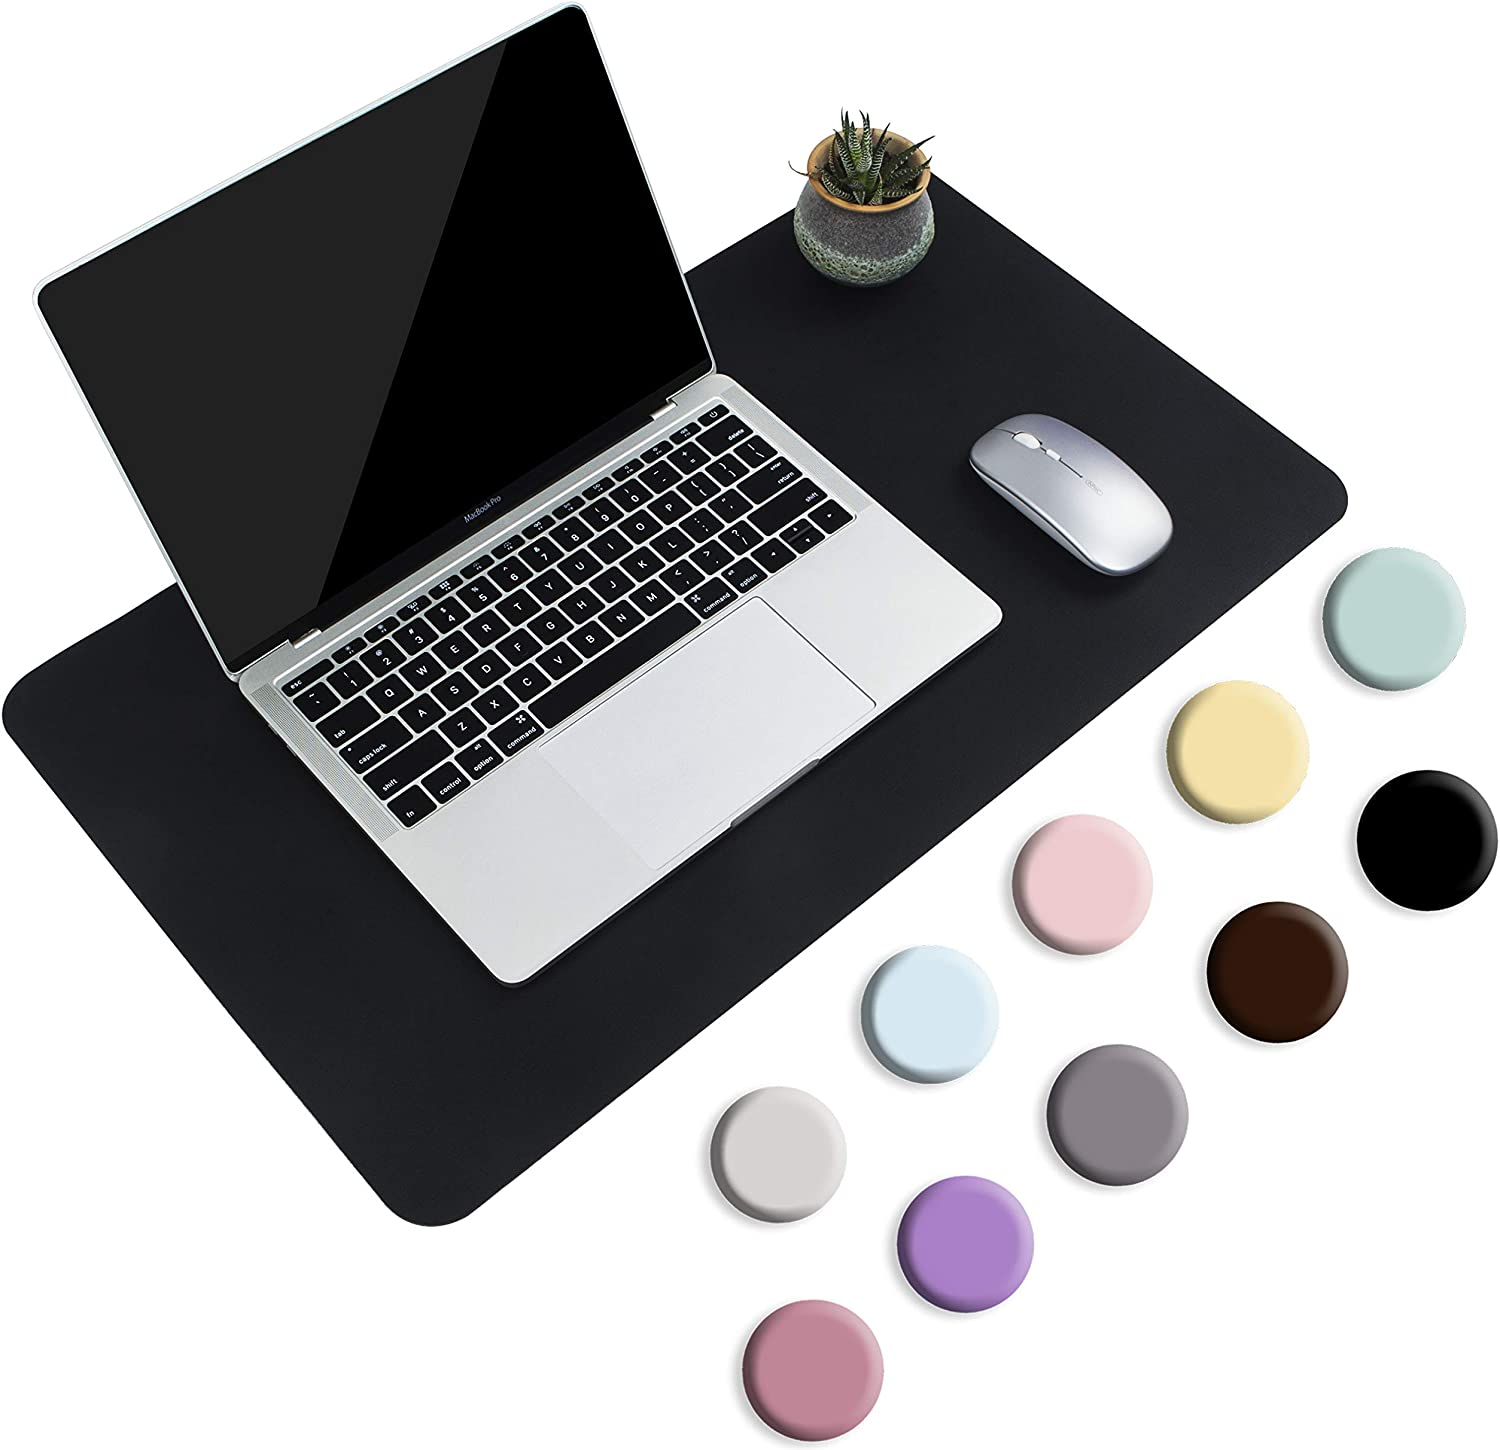 "Non-Slip Desk Pad, Waterproof PVC Leather Desk Table Protector, Ultra Thin Large Mouse Pad, Easy Clean Laptop Desk Writing Mat for Office Work/Home/Decor(Black, 23.6"" x 13.7"") : Office Products"